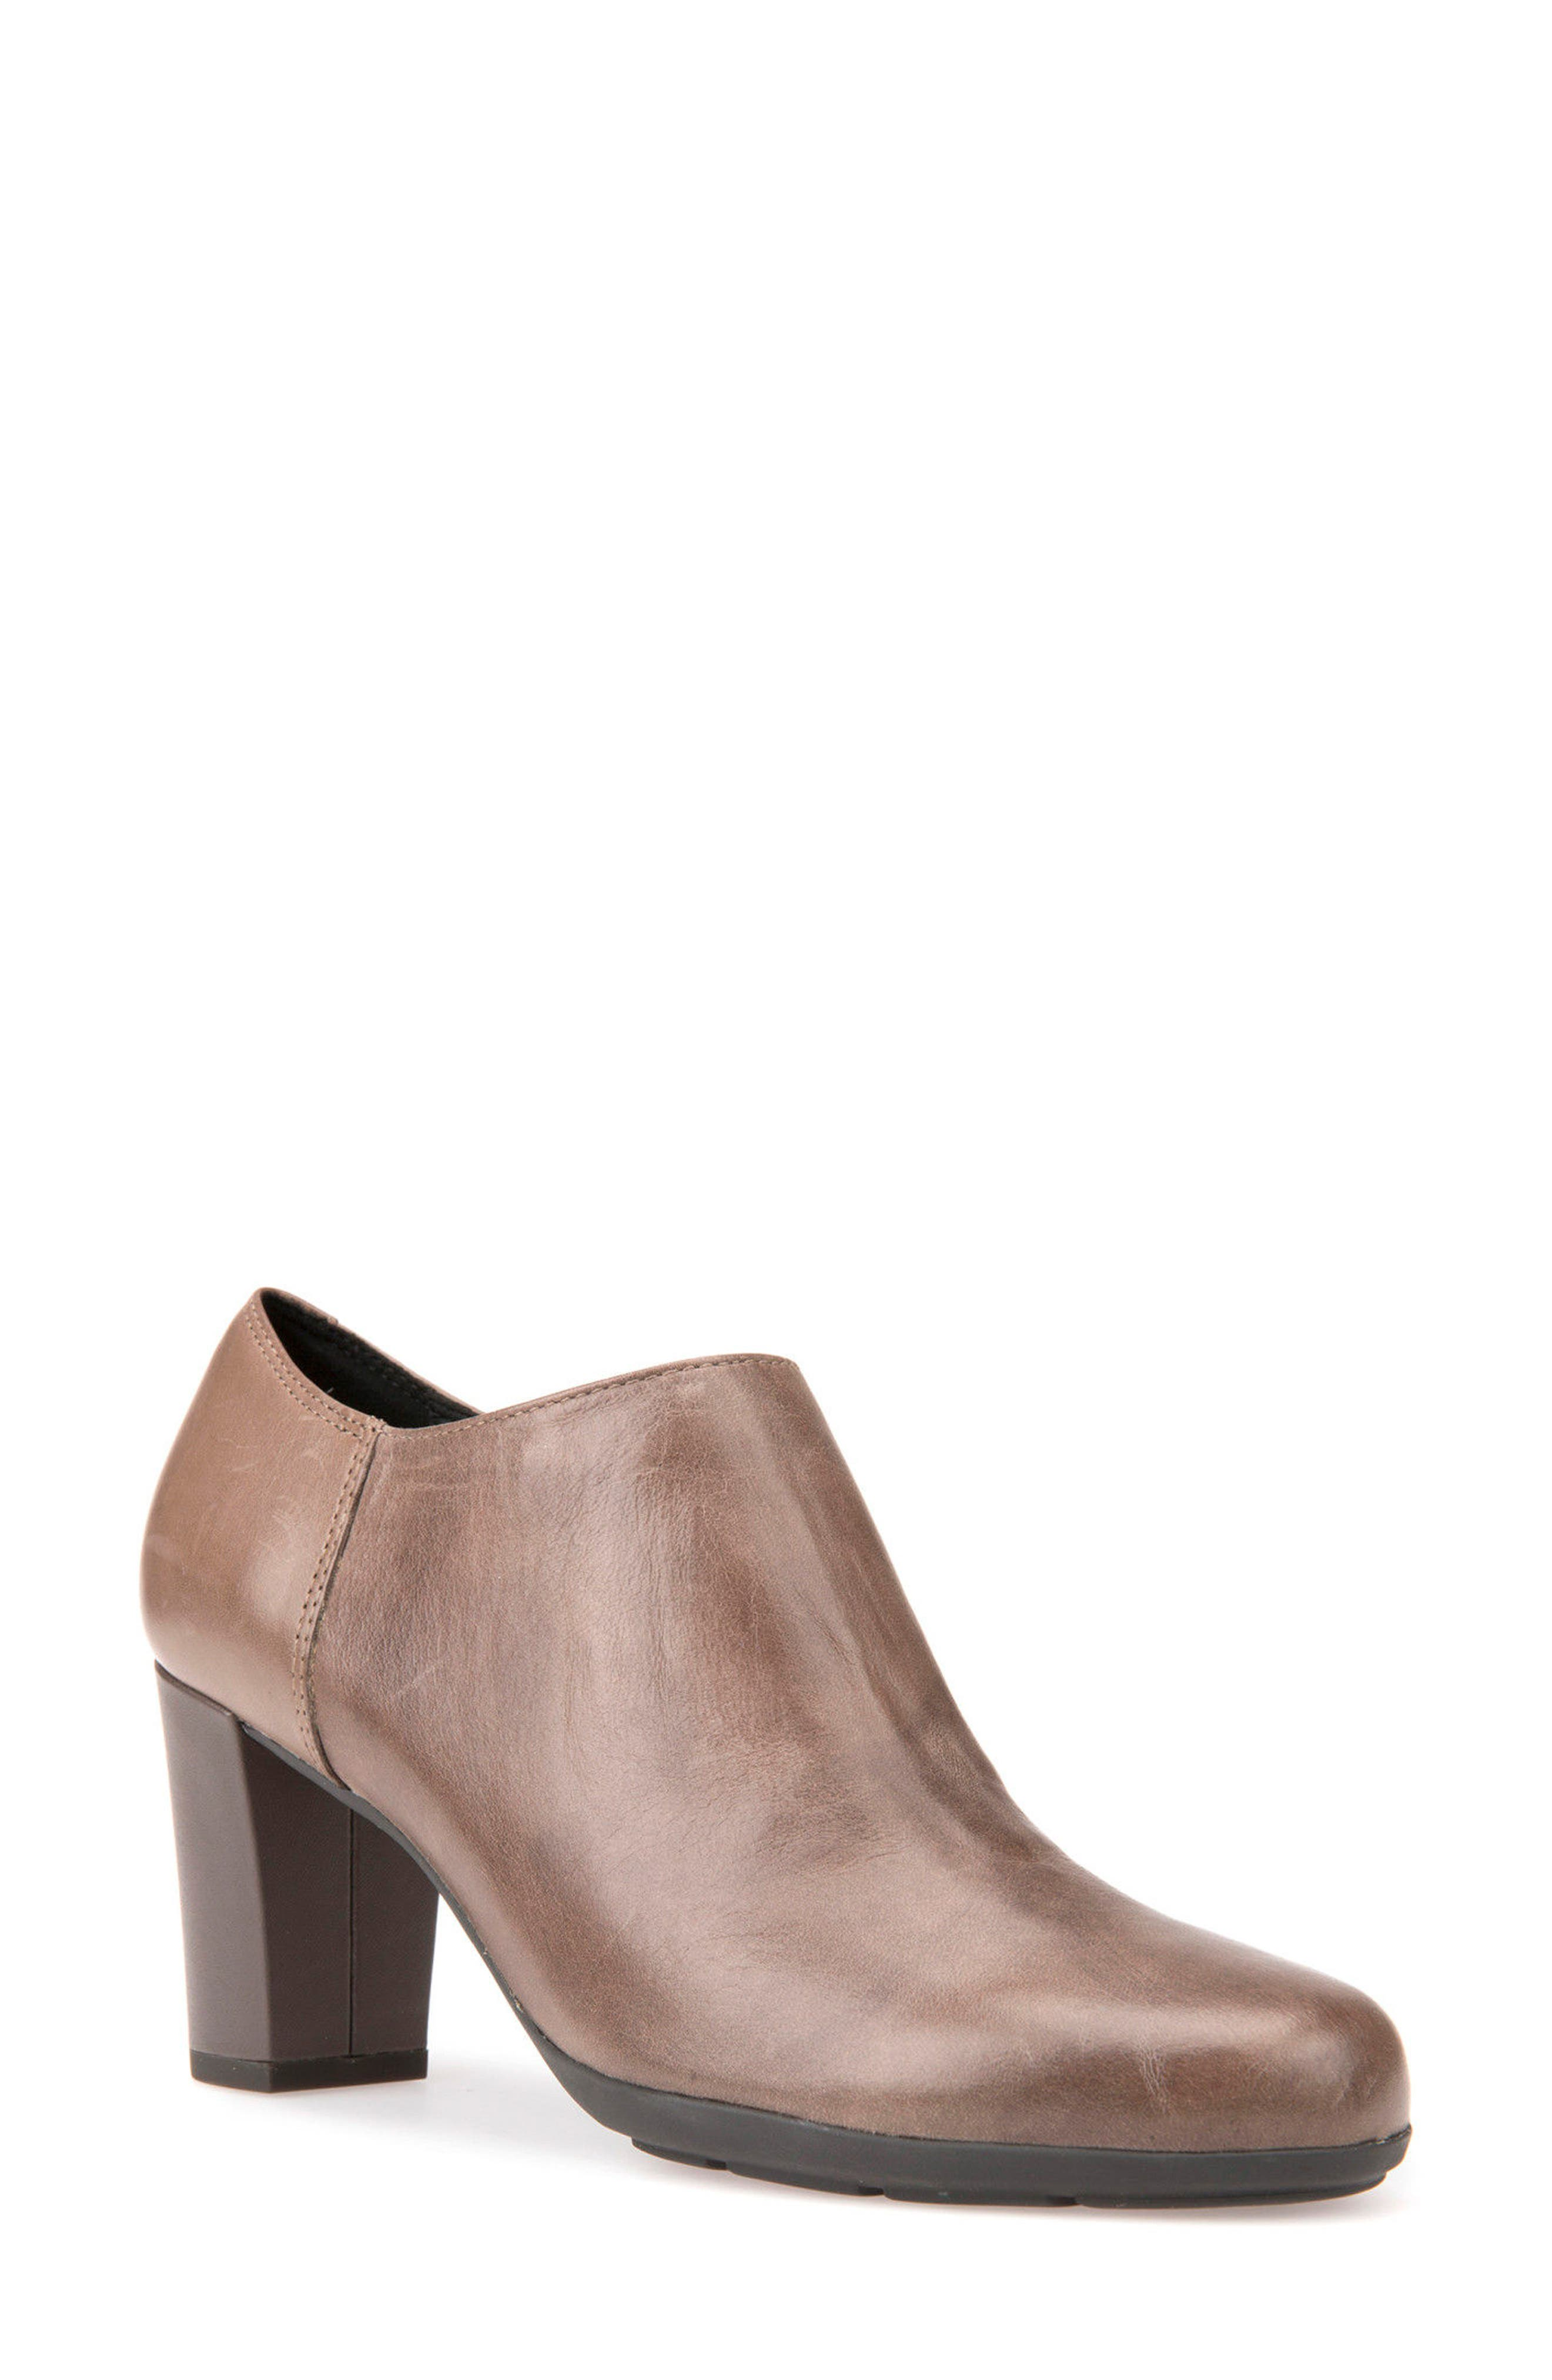 Geox Annya Bootie - Brown